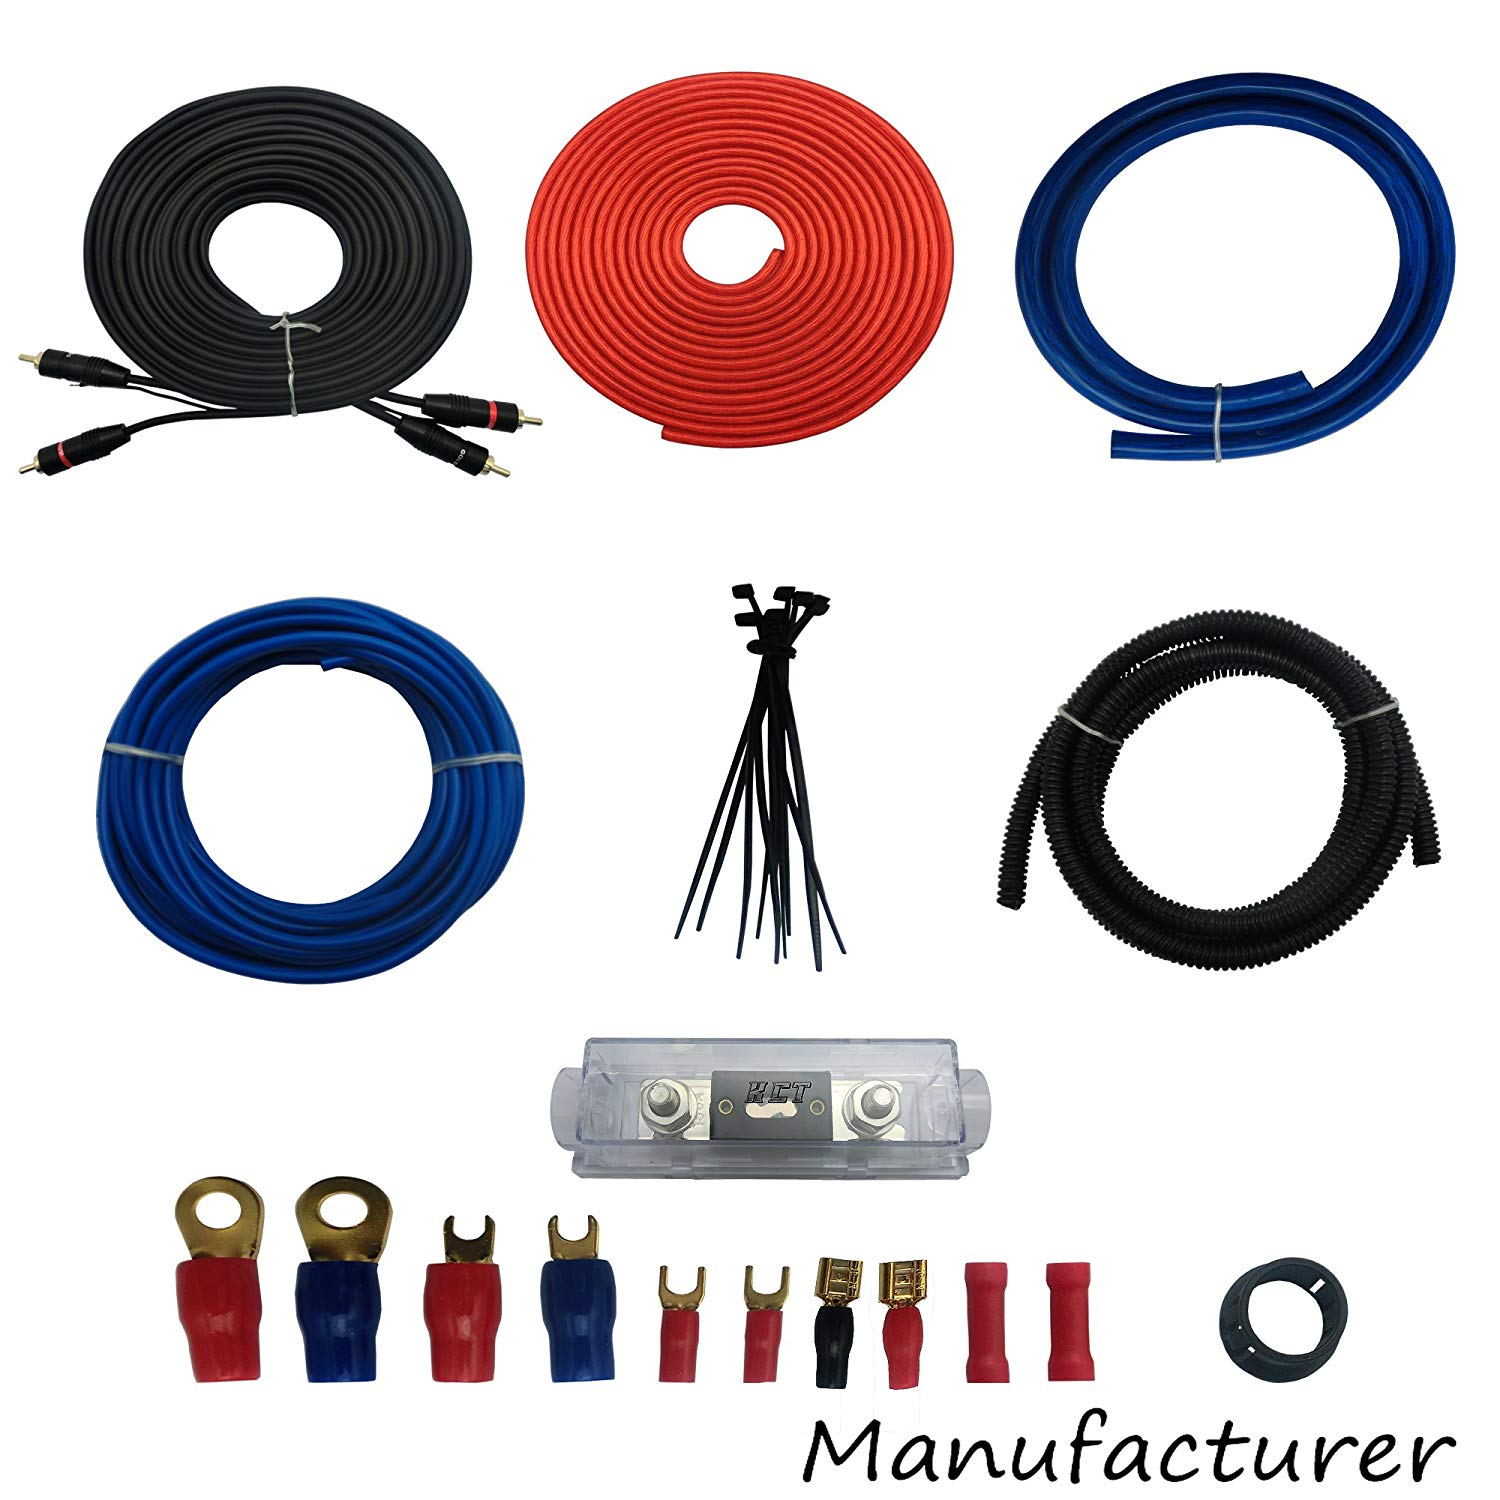 Cheap 4 Ga Amp Wiring Kit Find Deals On Line At Gauge Amplifier Get Quotations Install Complete Installation Cables 3000w